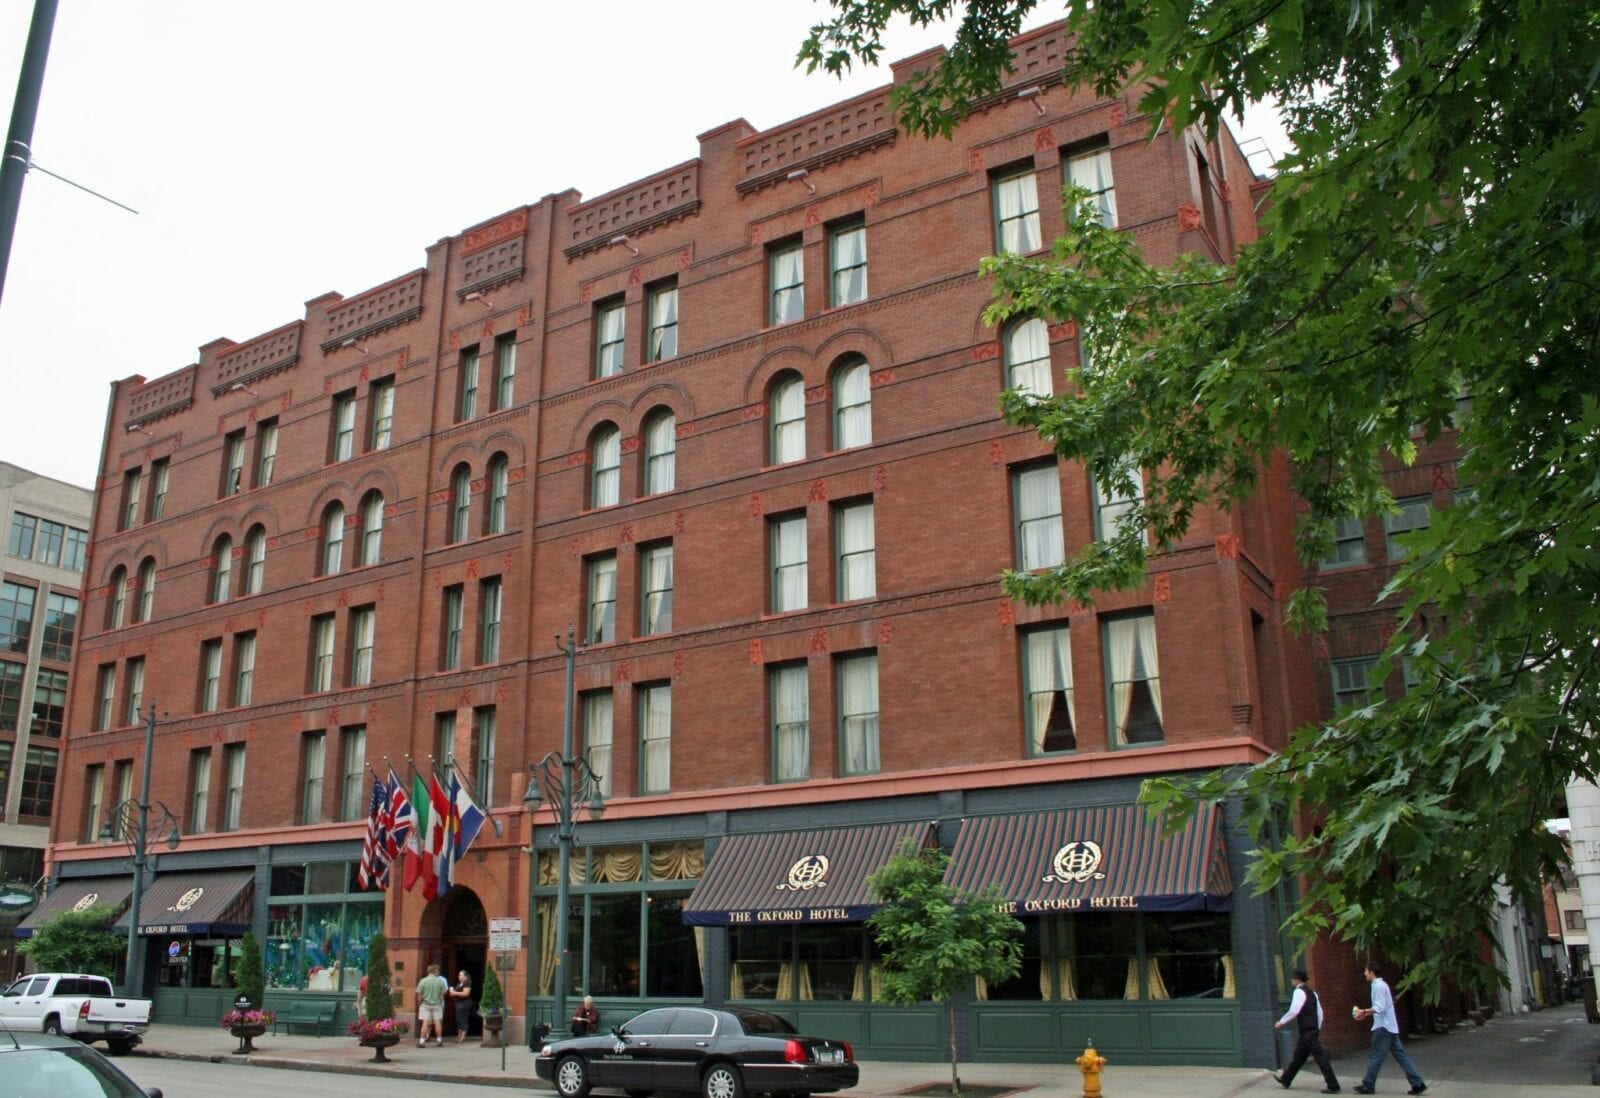 The Oxford Hotel.